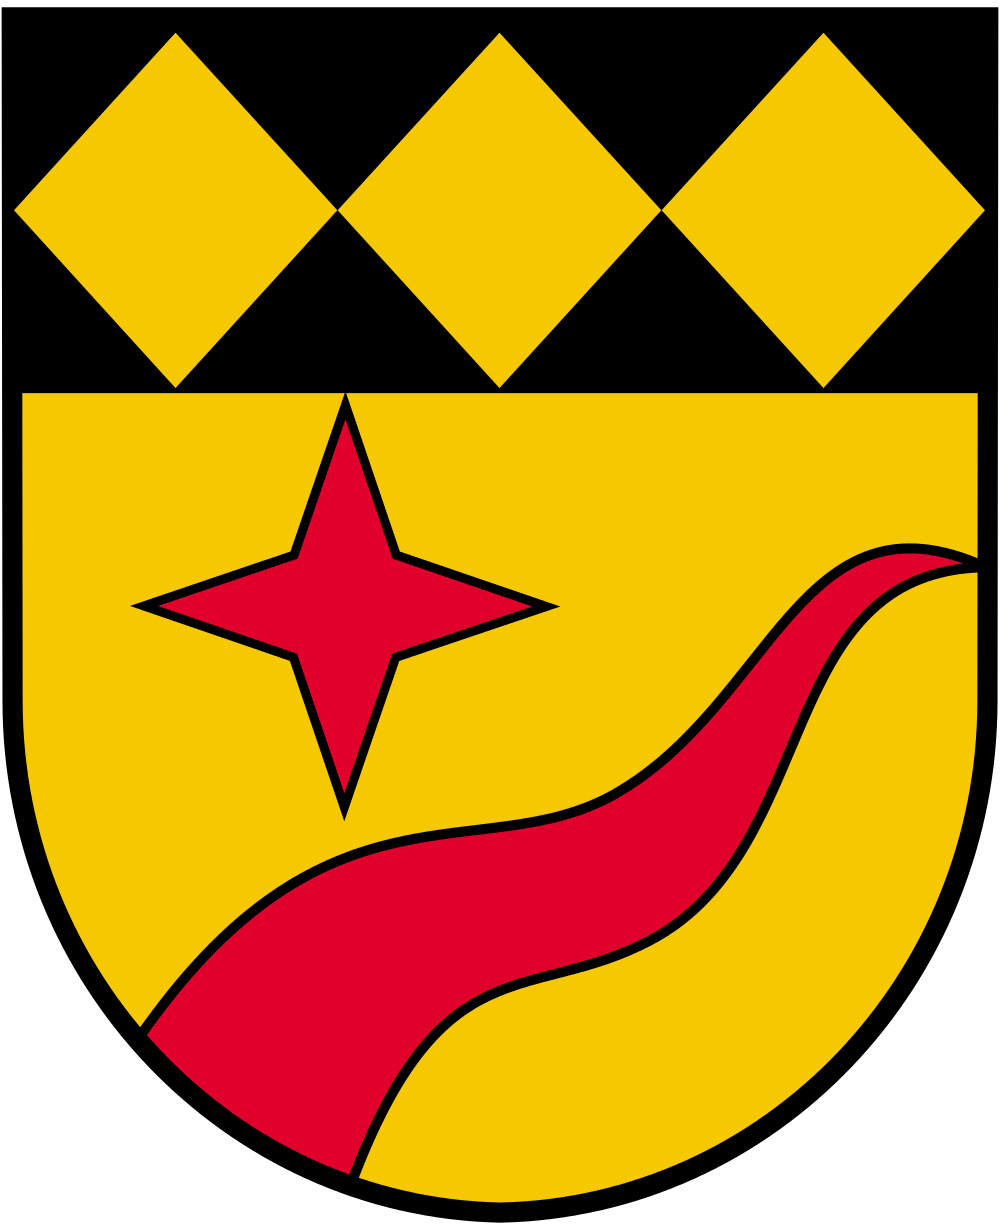 File:Coat of arms Kopfing.svg.